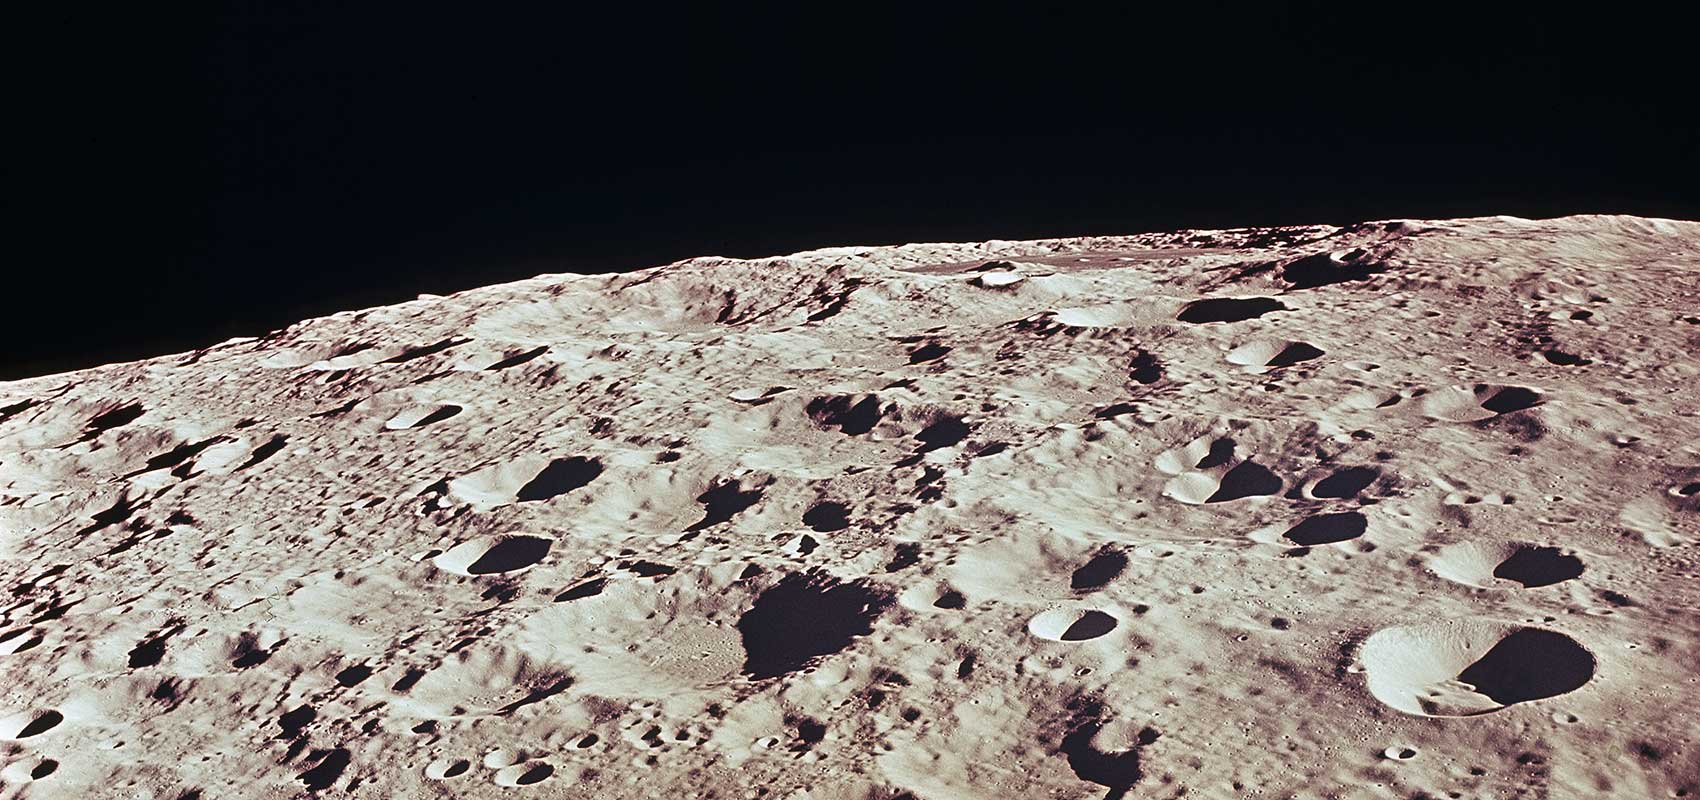 Photograph of the crated Moon surface